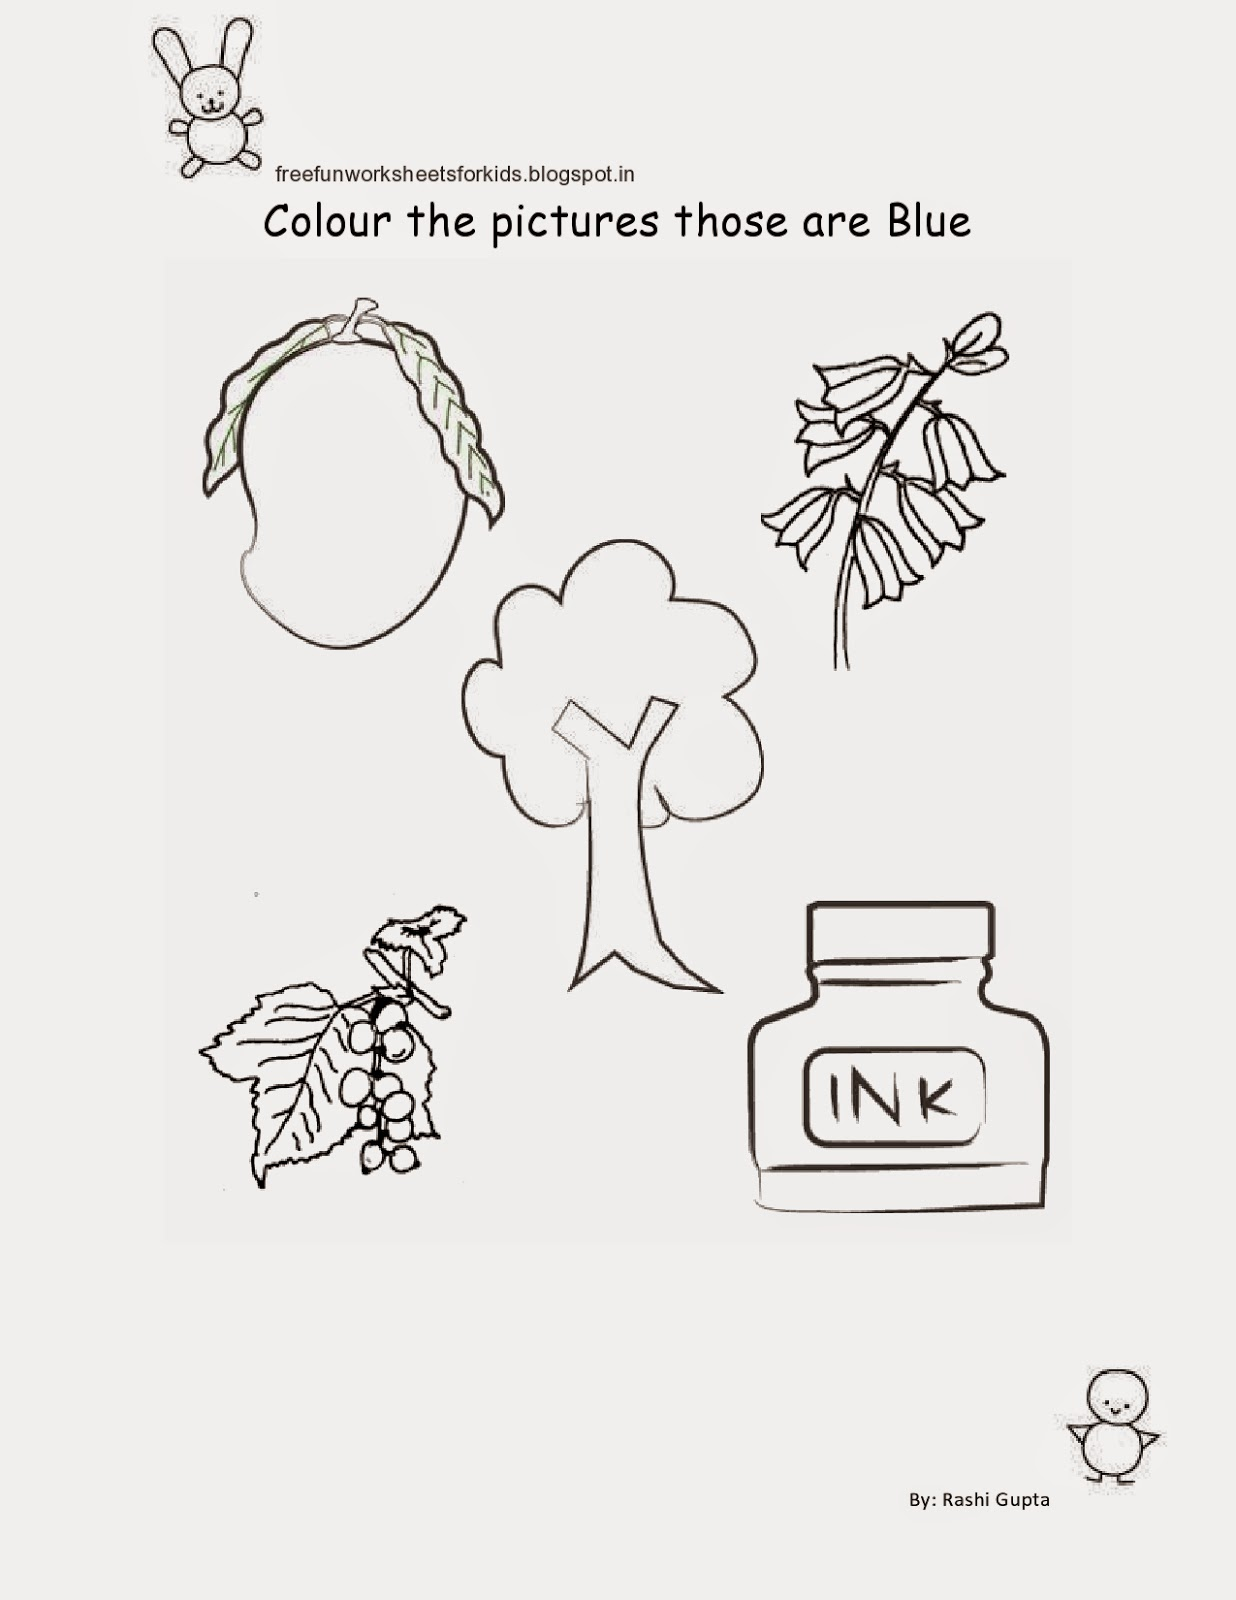 Free Fun Worksheets For Kids: February 2015